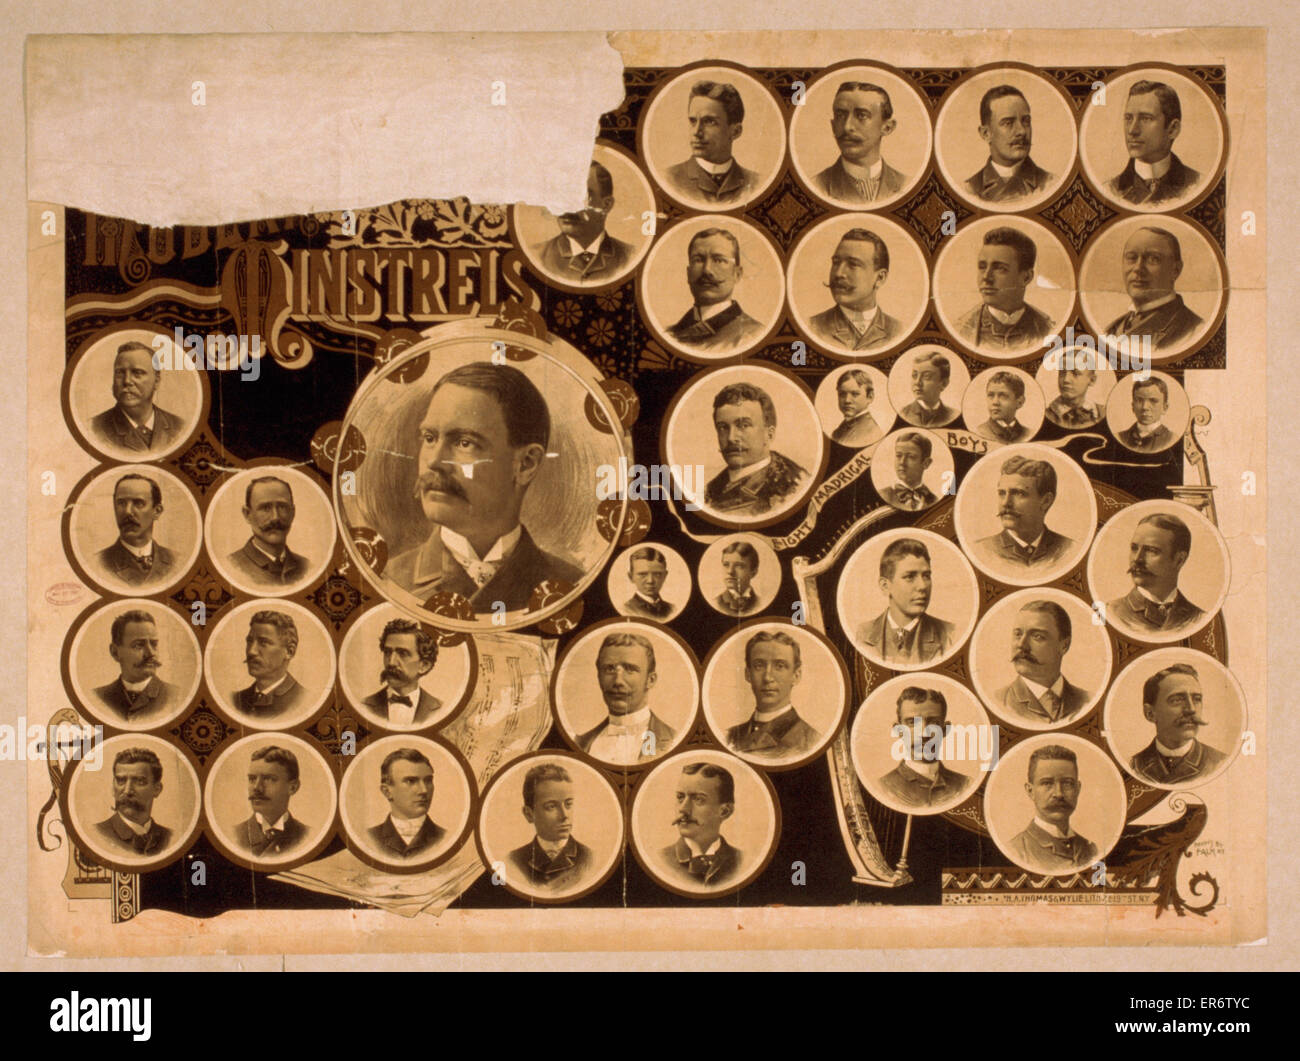 Modern Minstrels. Consists of multiple portraits, including the Eight Madrigal Boys. Date 1887. - Stock Image